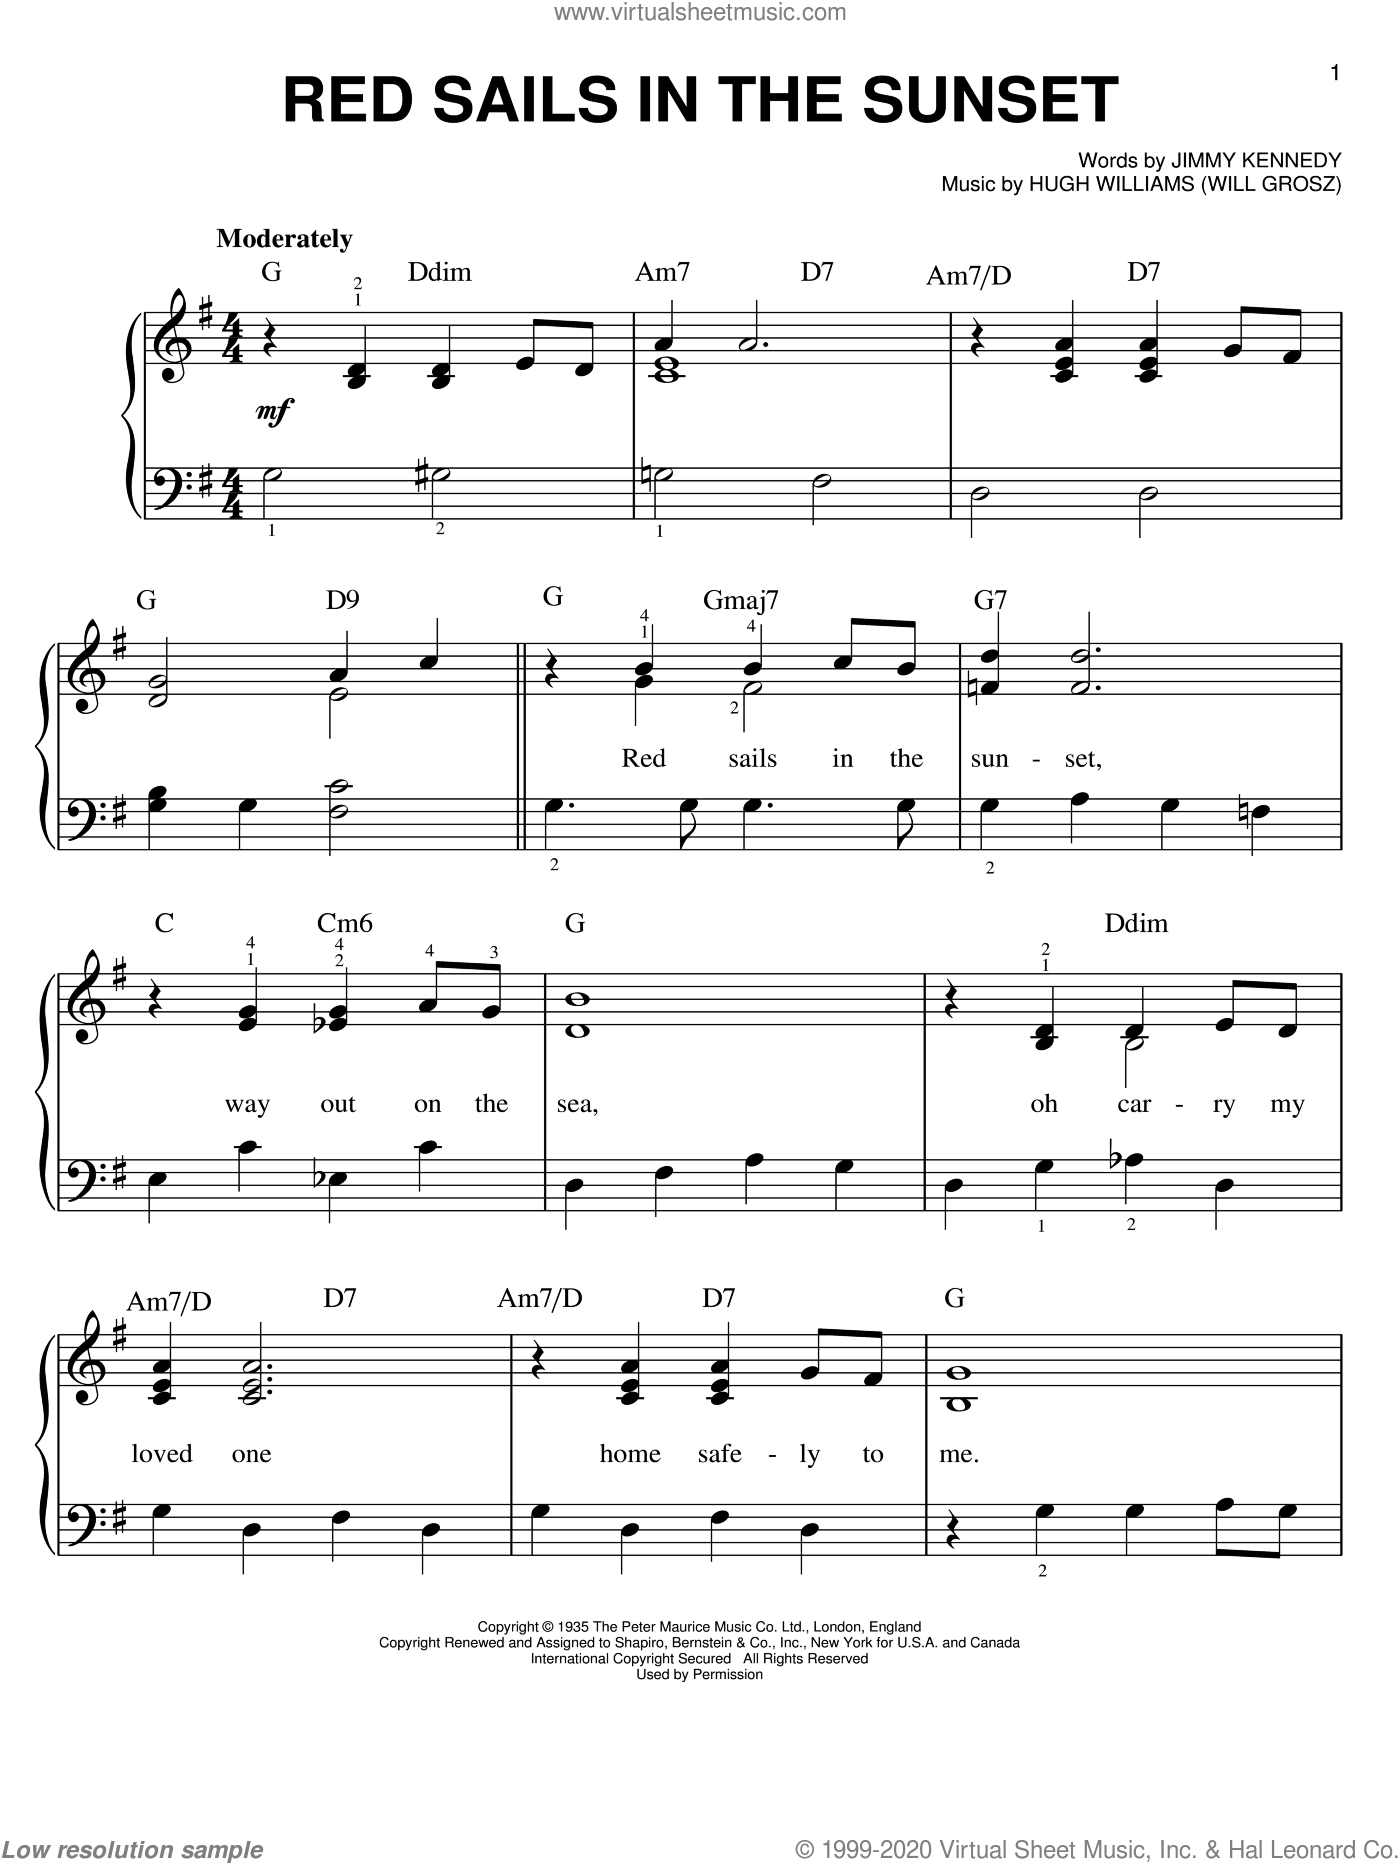 Red Sails In The Sunset sheet music for piano solo by Hugh Williams and Jimmy Kennedy, easy skill level